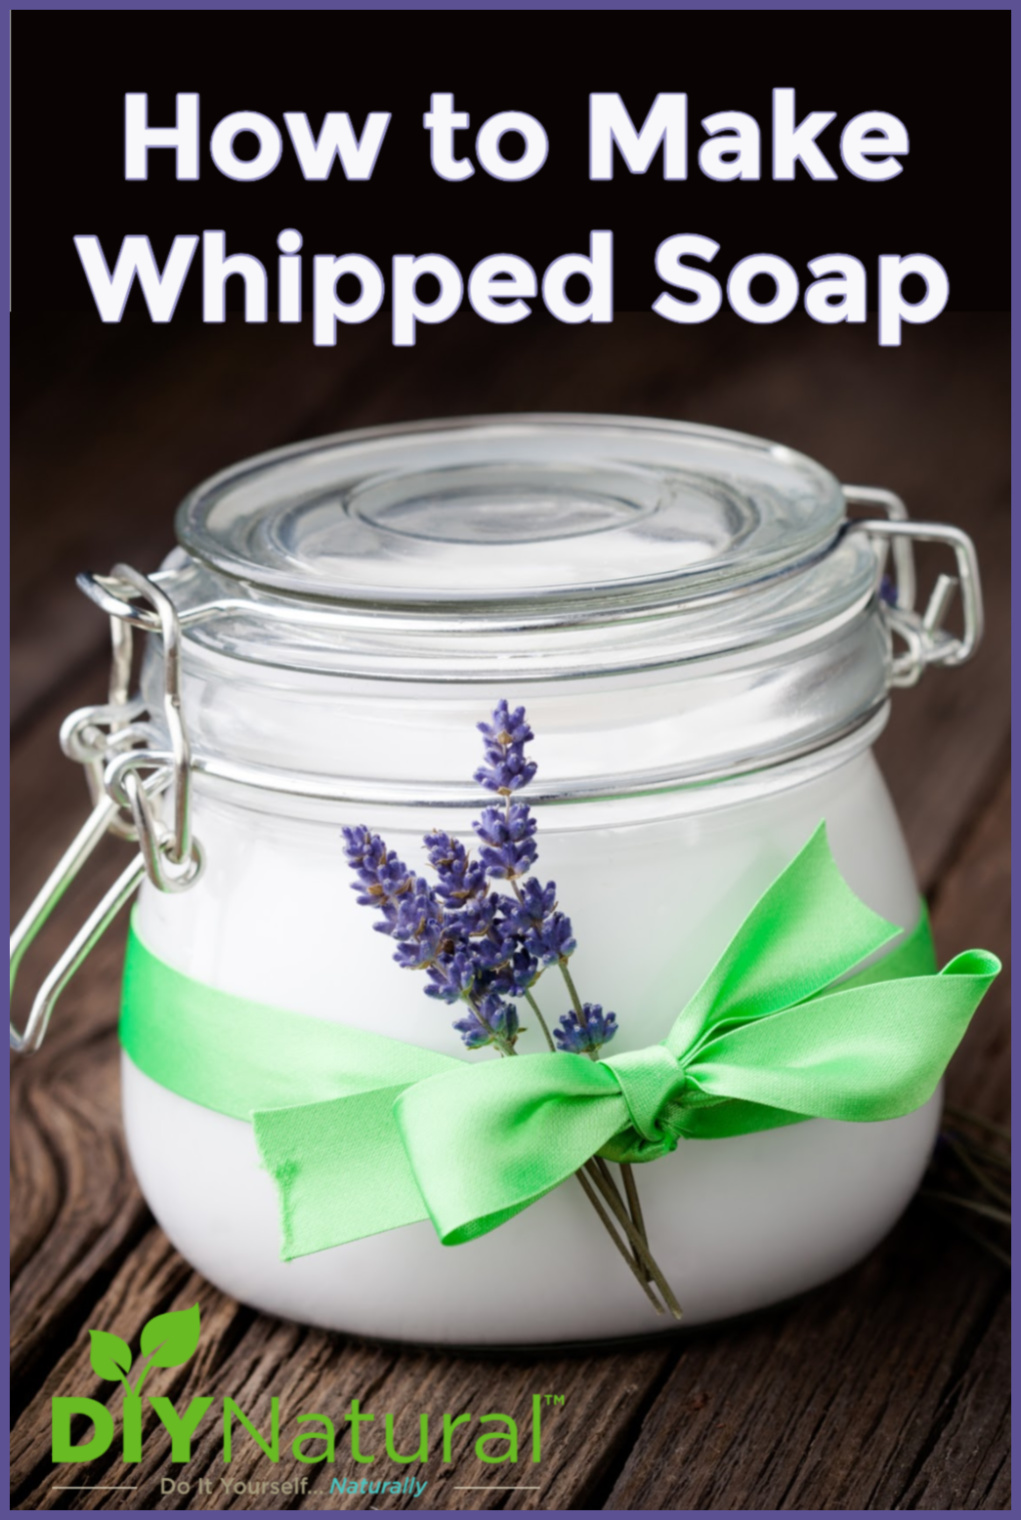 How To Make Whipped Soap A Soft And Creamy Diy Whipped Soap